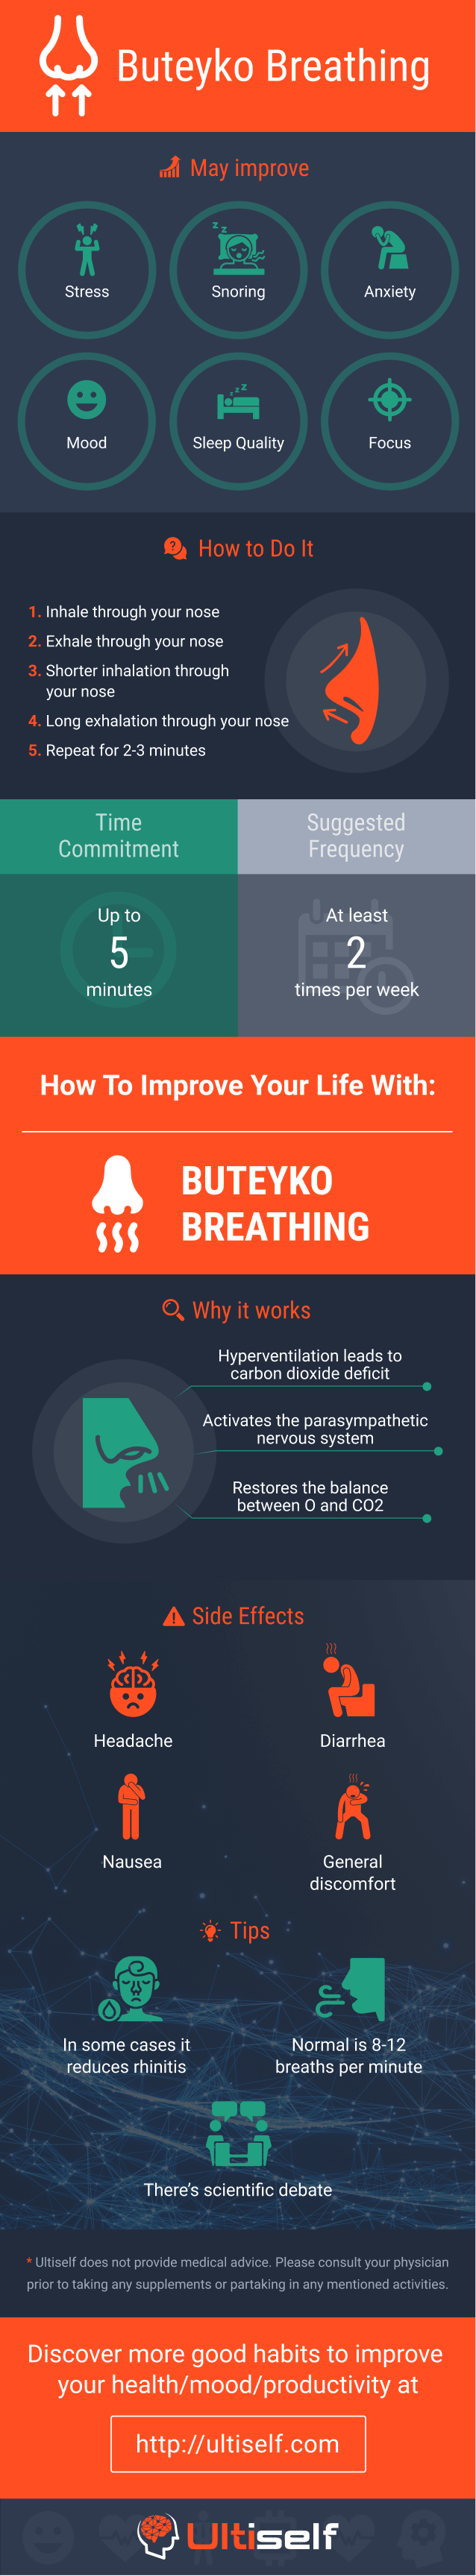 Buteyko Breathing infographic